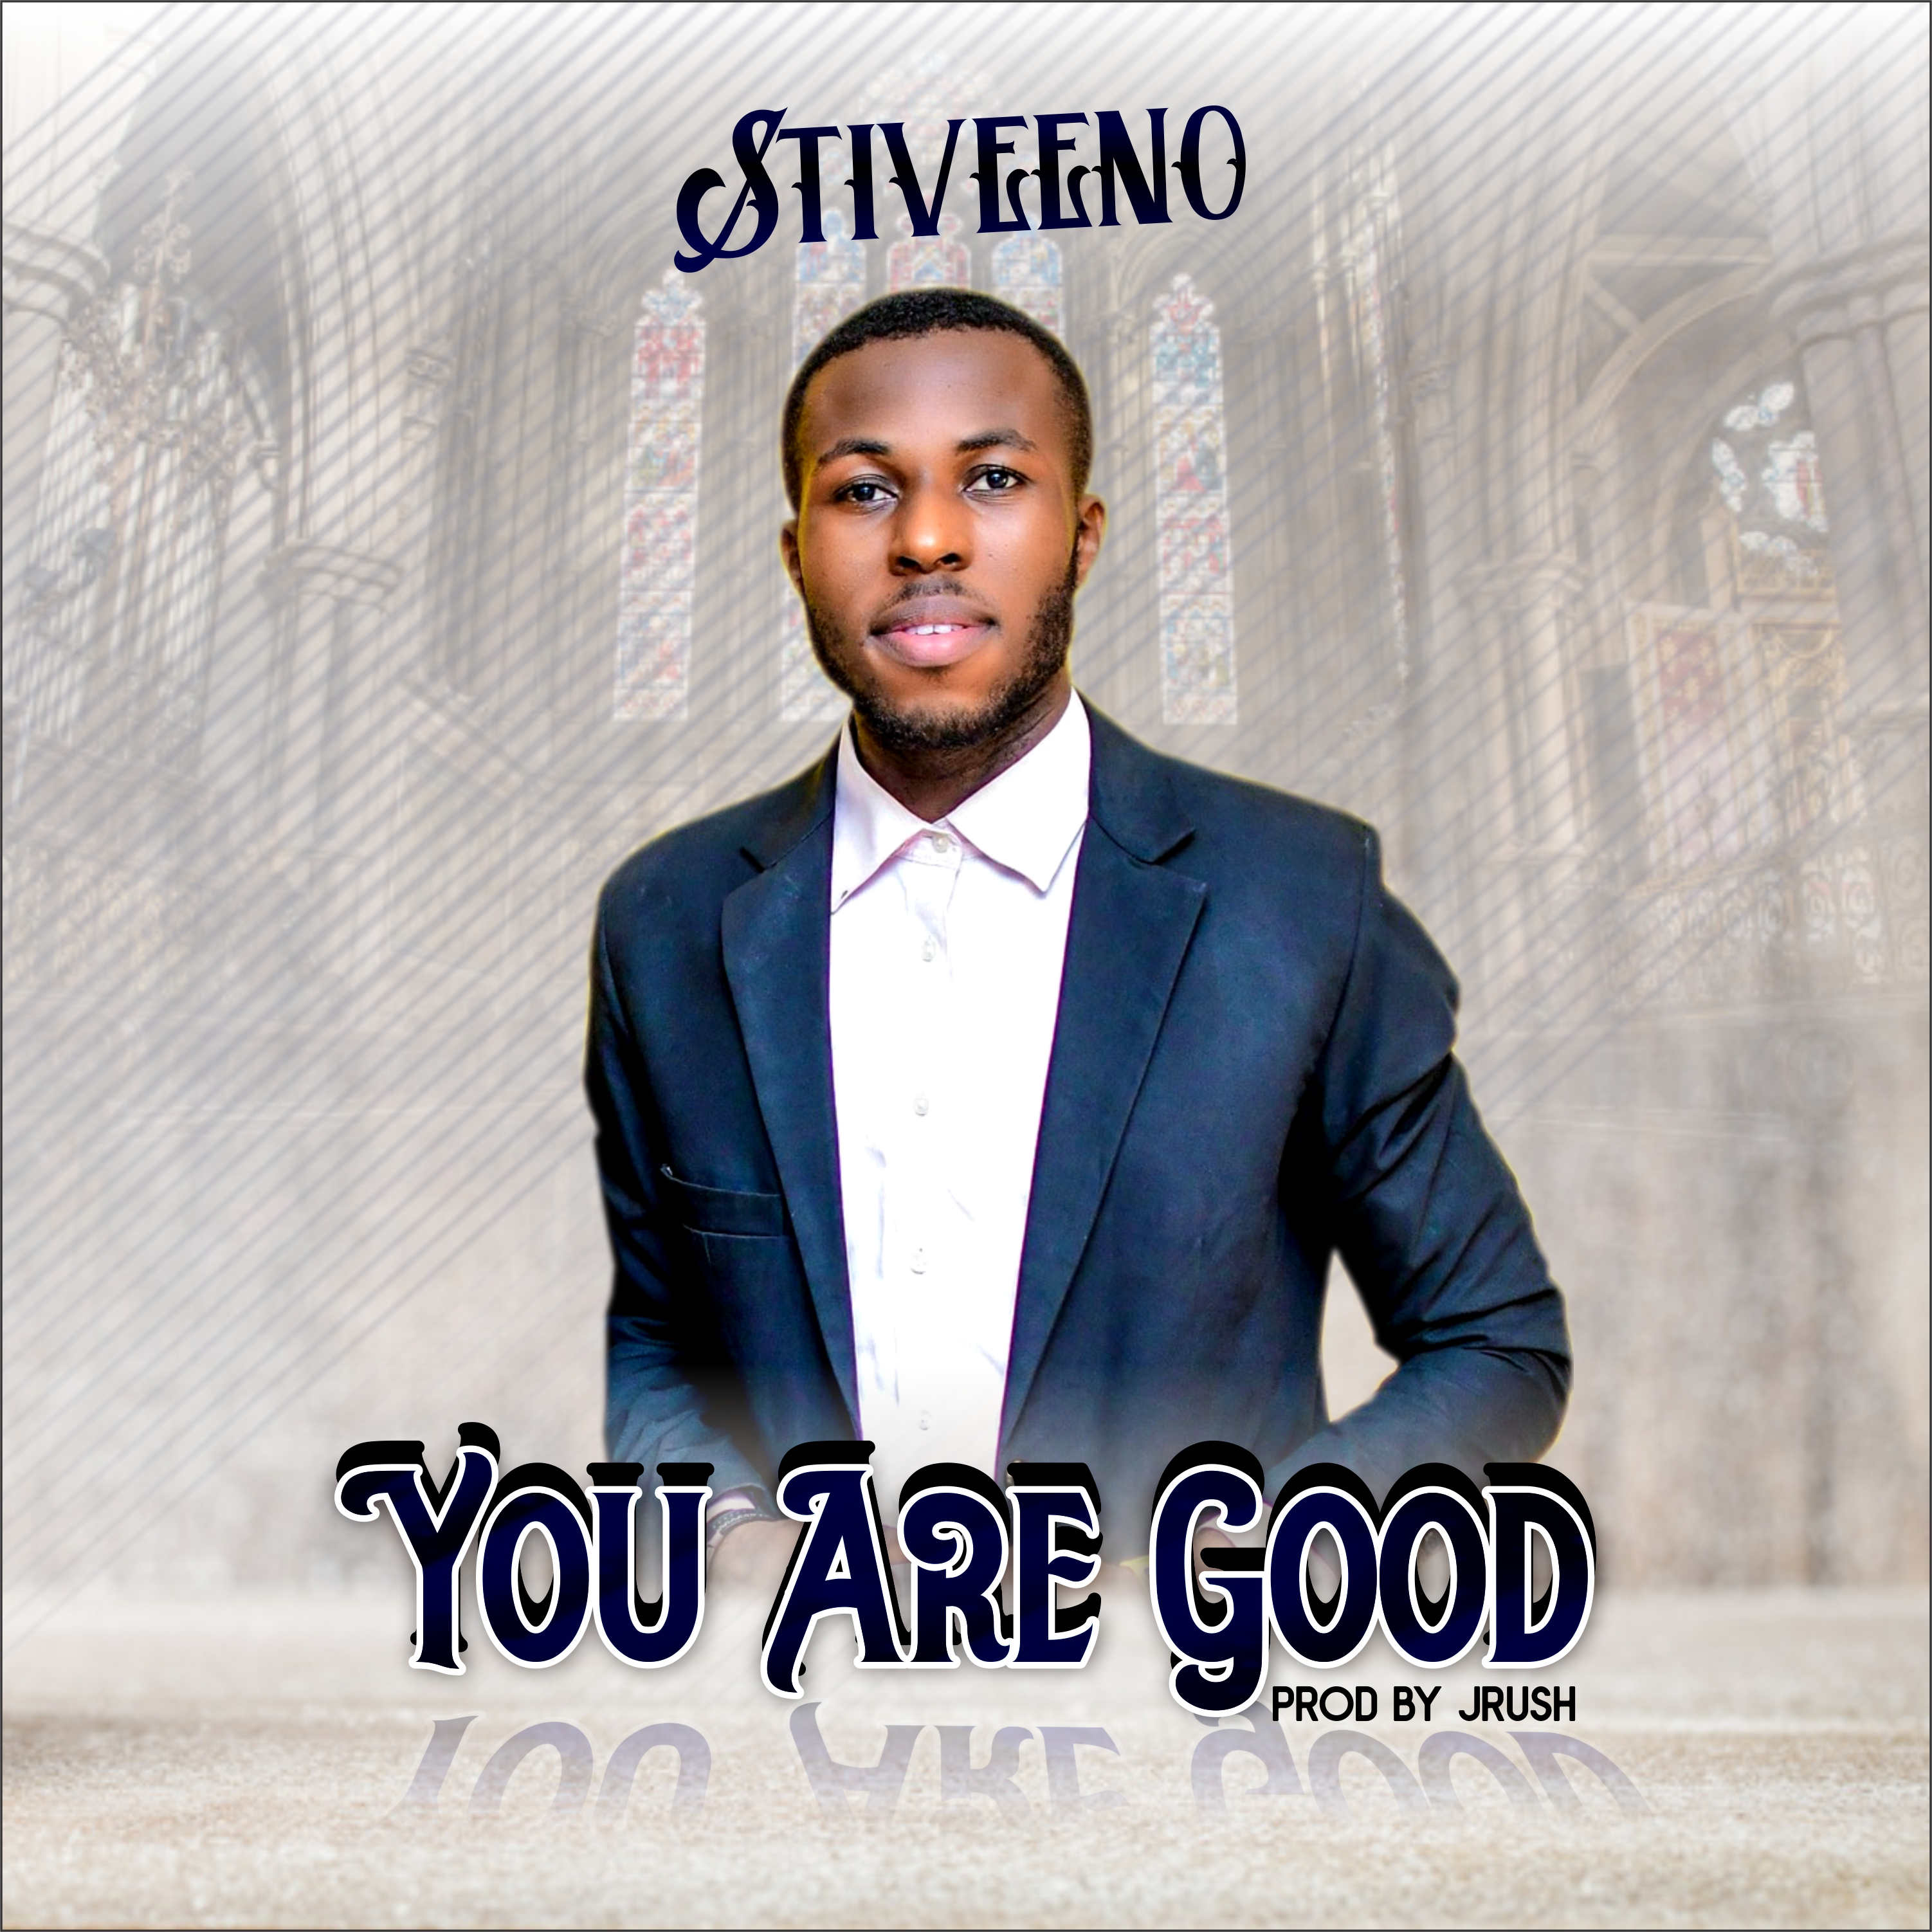 YOU ARE GOD - Stiveeno